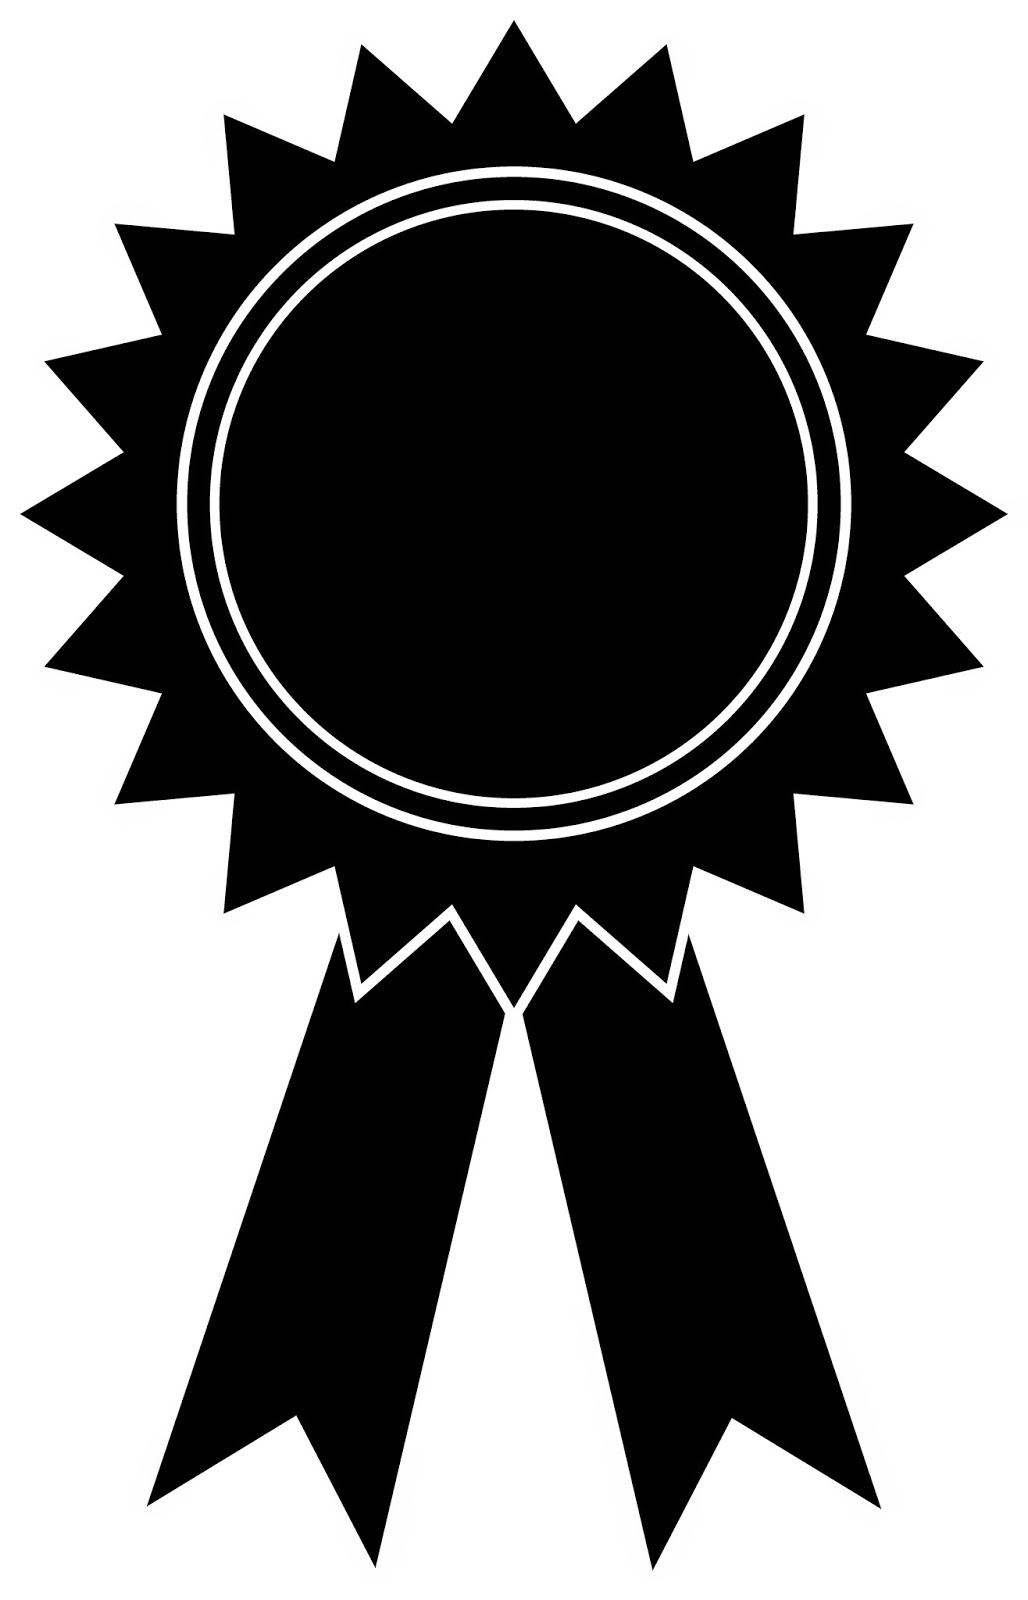 picture about Printable Ribbon called Award Ribbon Printable Clipart Panda - Totally free Clipart Illustrations or photos